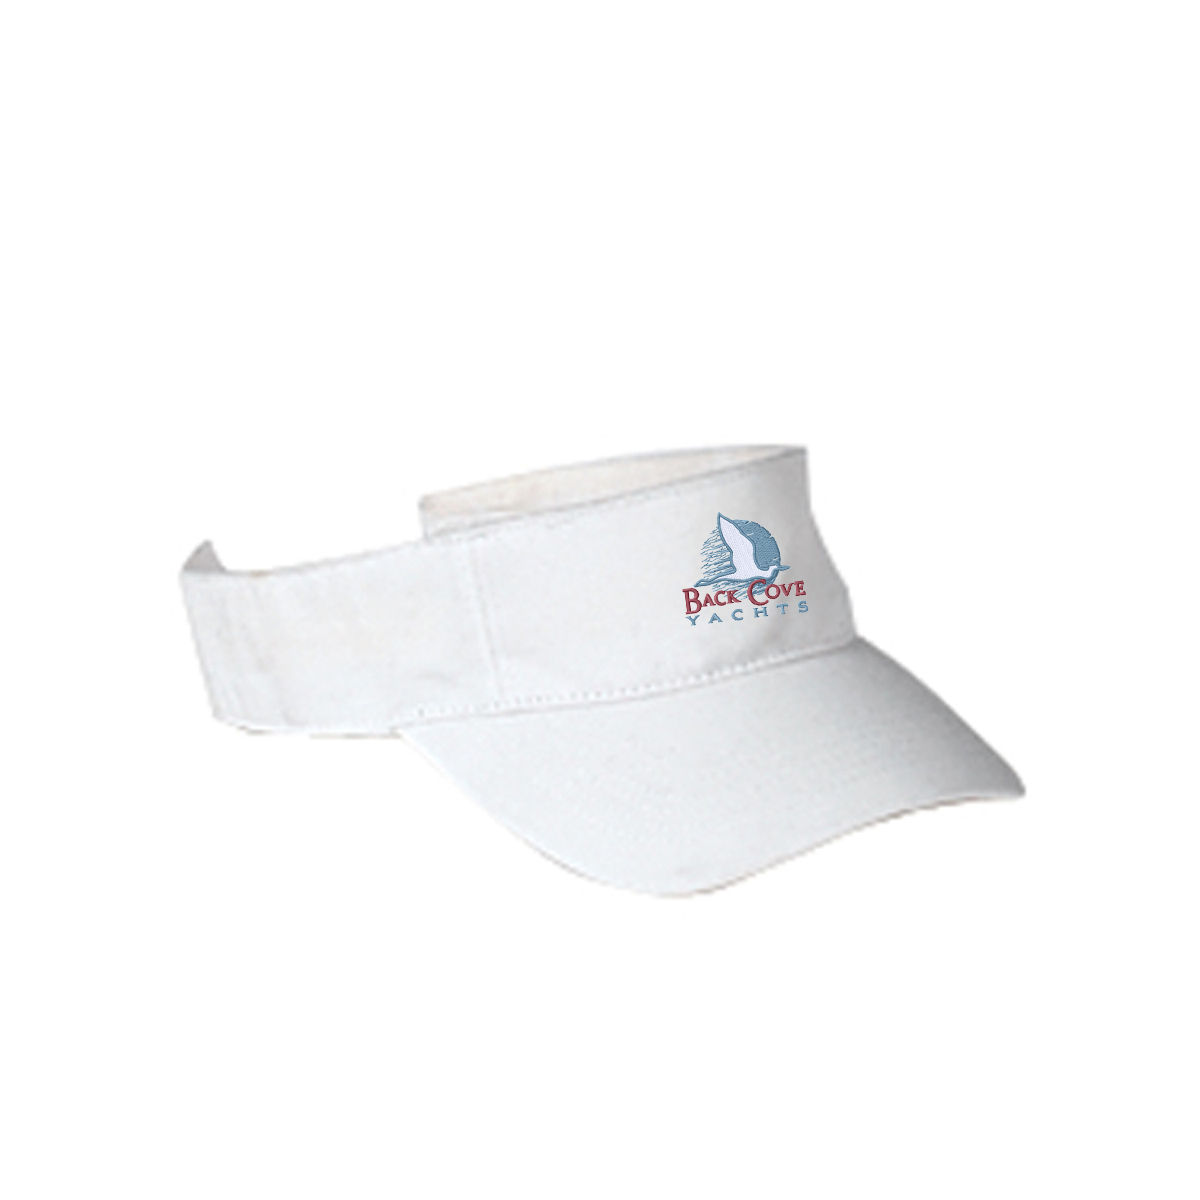 Back Cove Yachts - Cotton Twill Visor